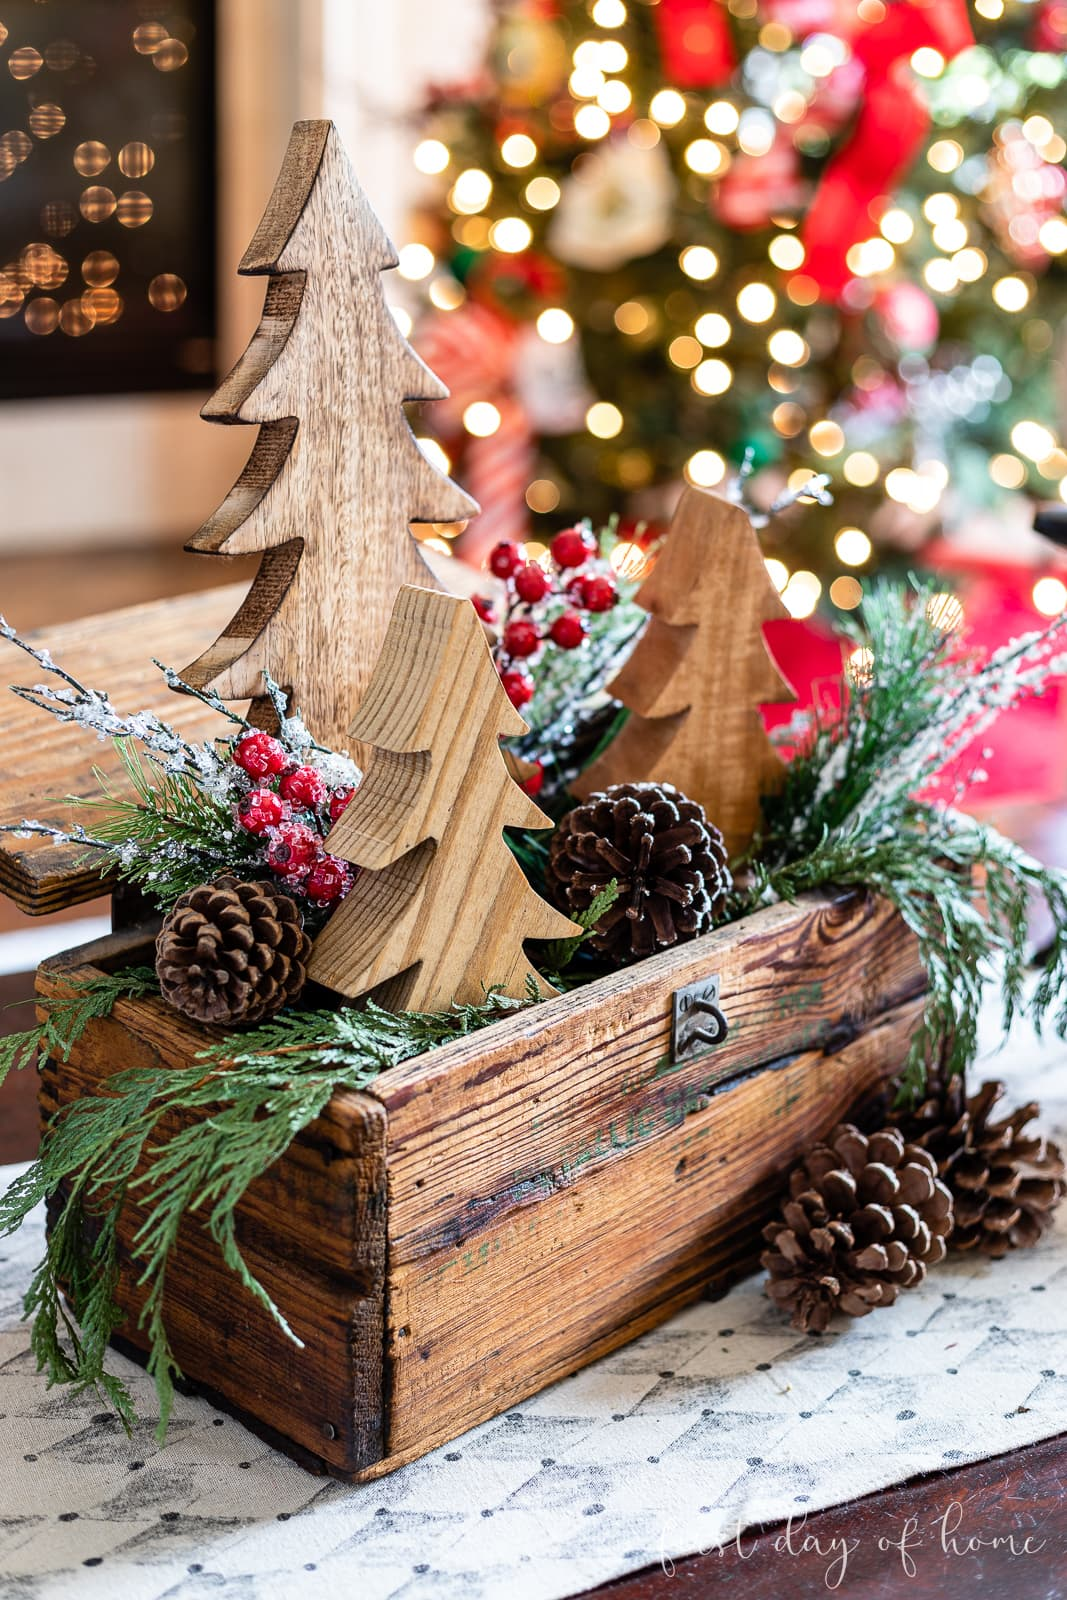 Wooden crate decorated for Christmas with trio of wooden trees, real evergreen branches, pine cones and berries